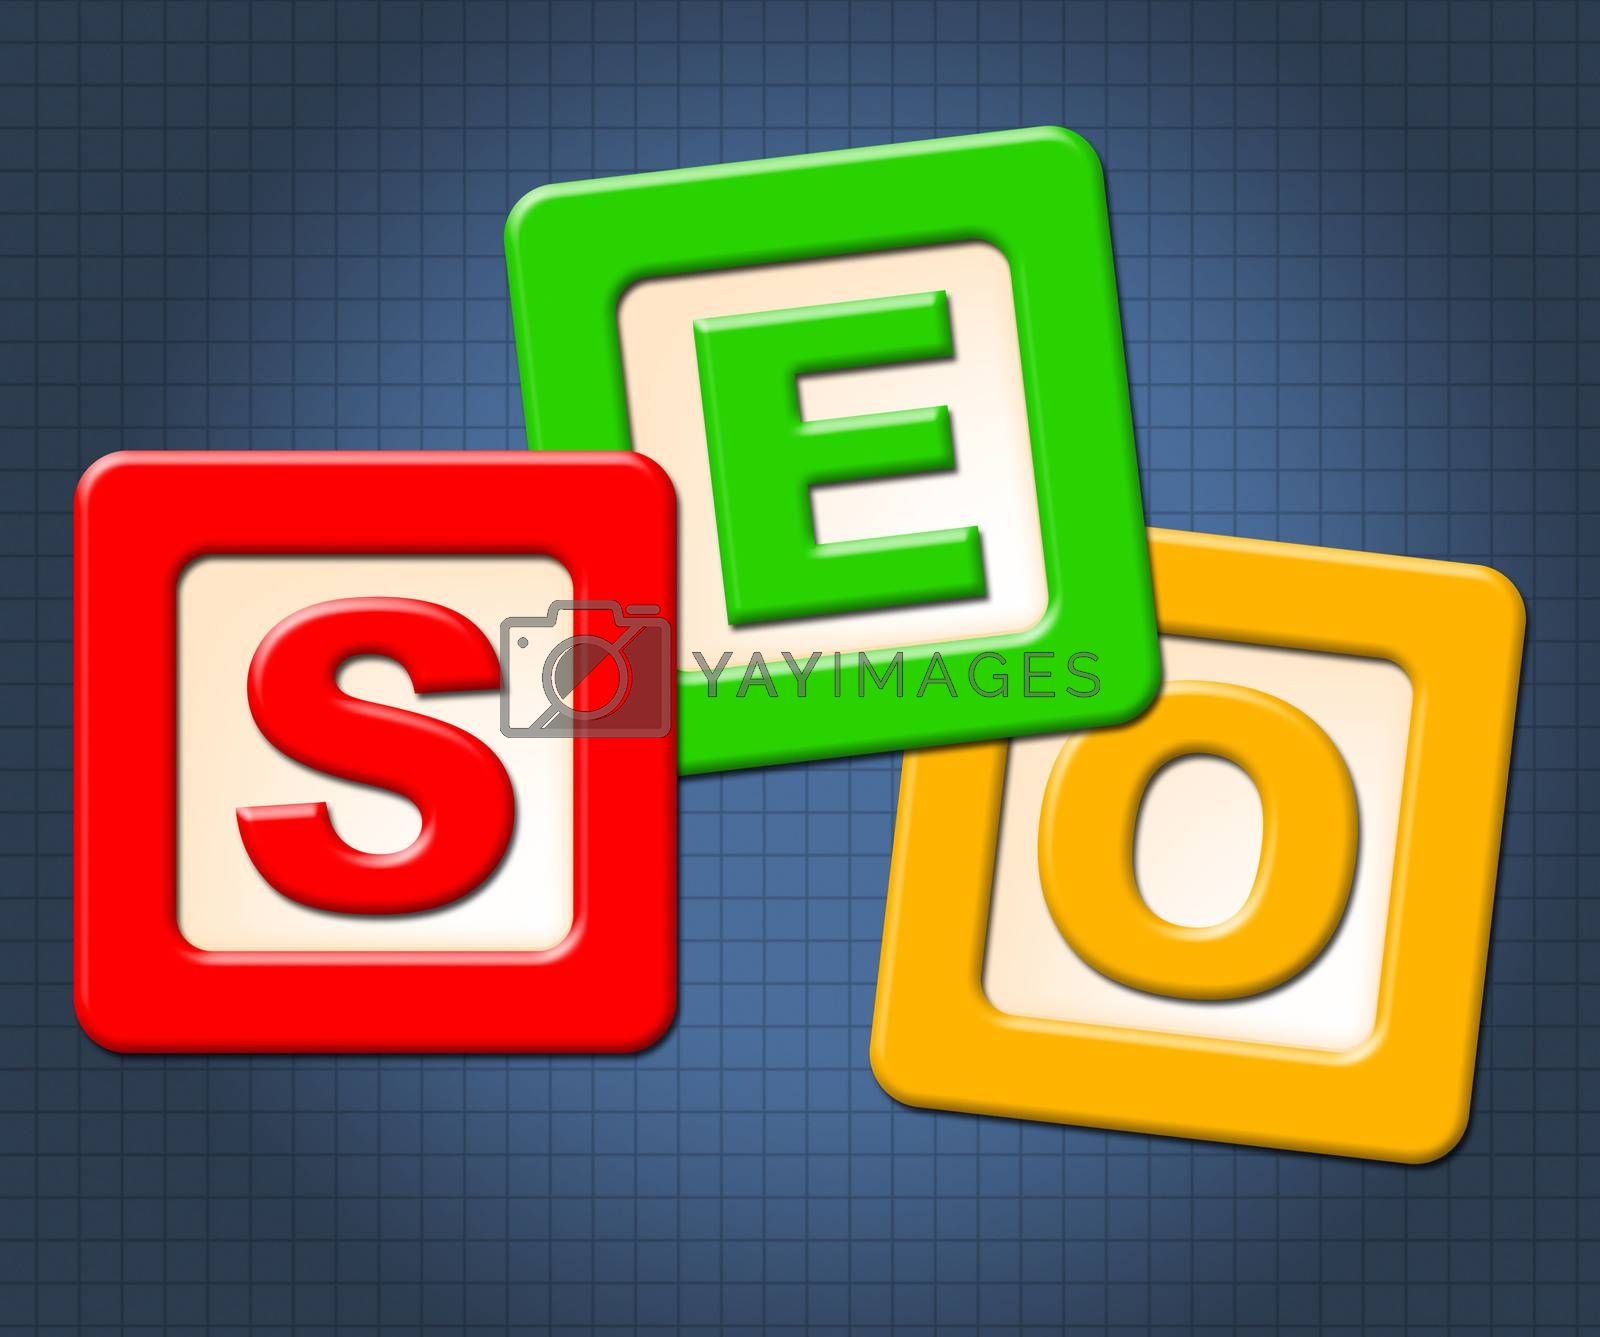 Seo Kids Blocks Shows Optimization Youngsters And Childhood by stuartmiles